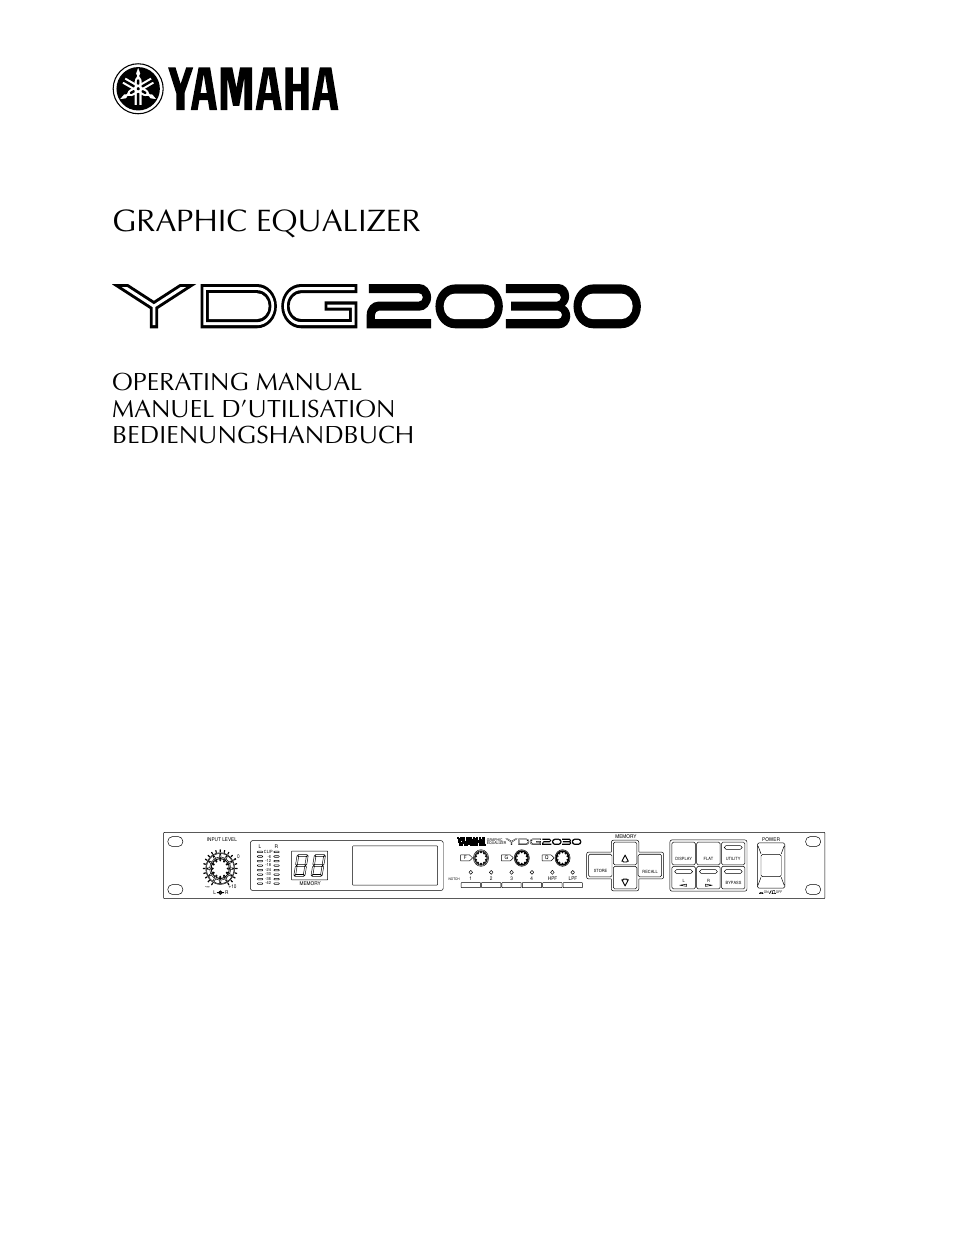 Yamaha YDG2030 User Manual | 27 pages